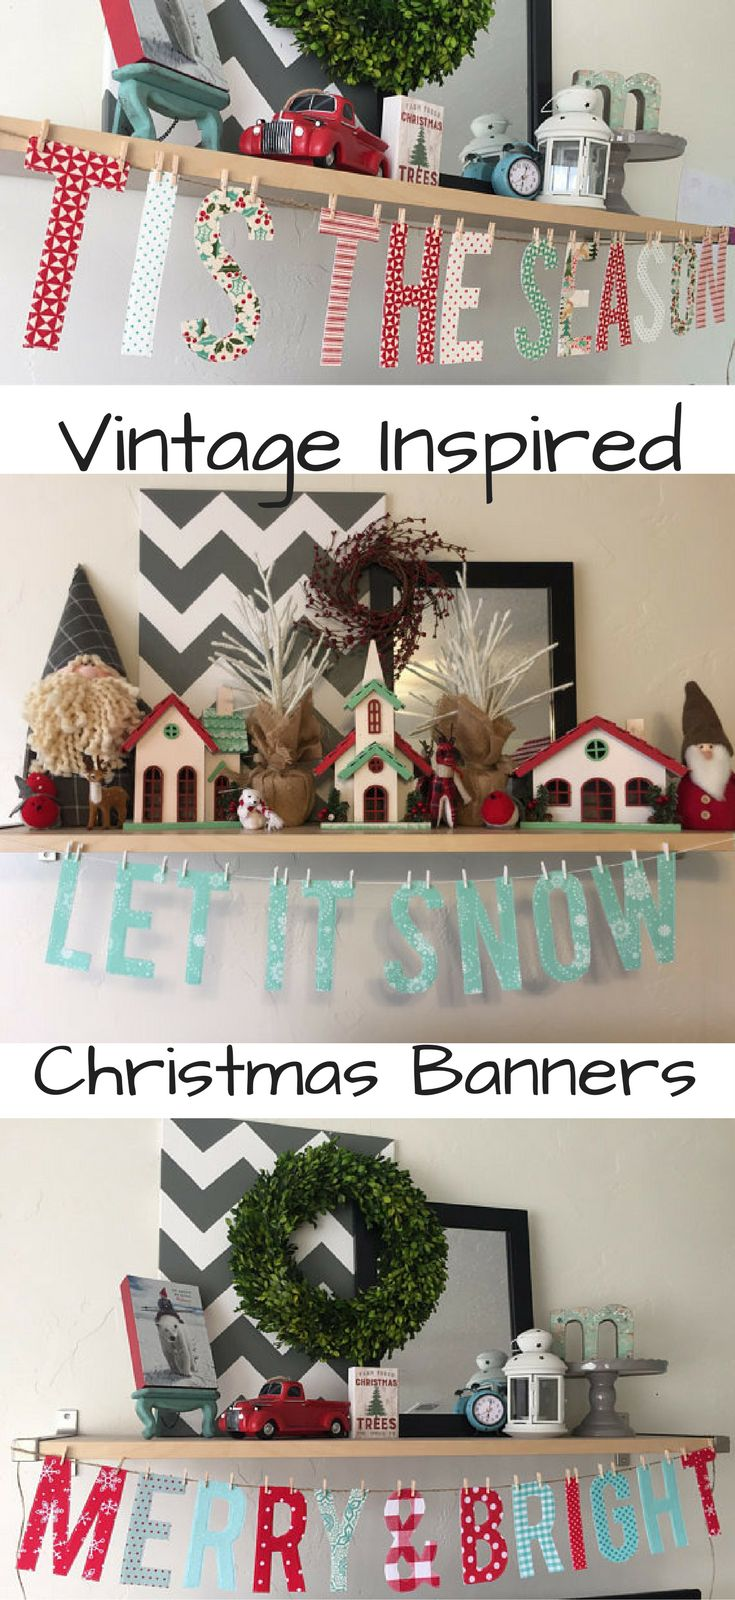 So Cute! Vintage inspired Christmas Banners #vintage #christmas #ad #merry&bright #tistheseason #letitsnow #banner #fireplace #shelf #holiday